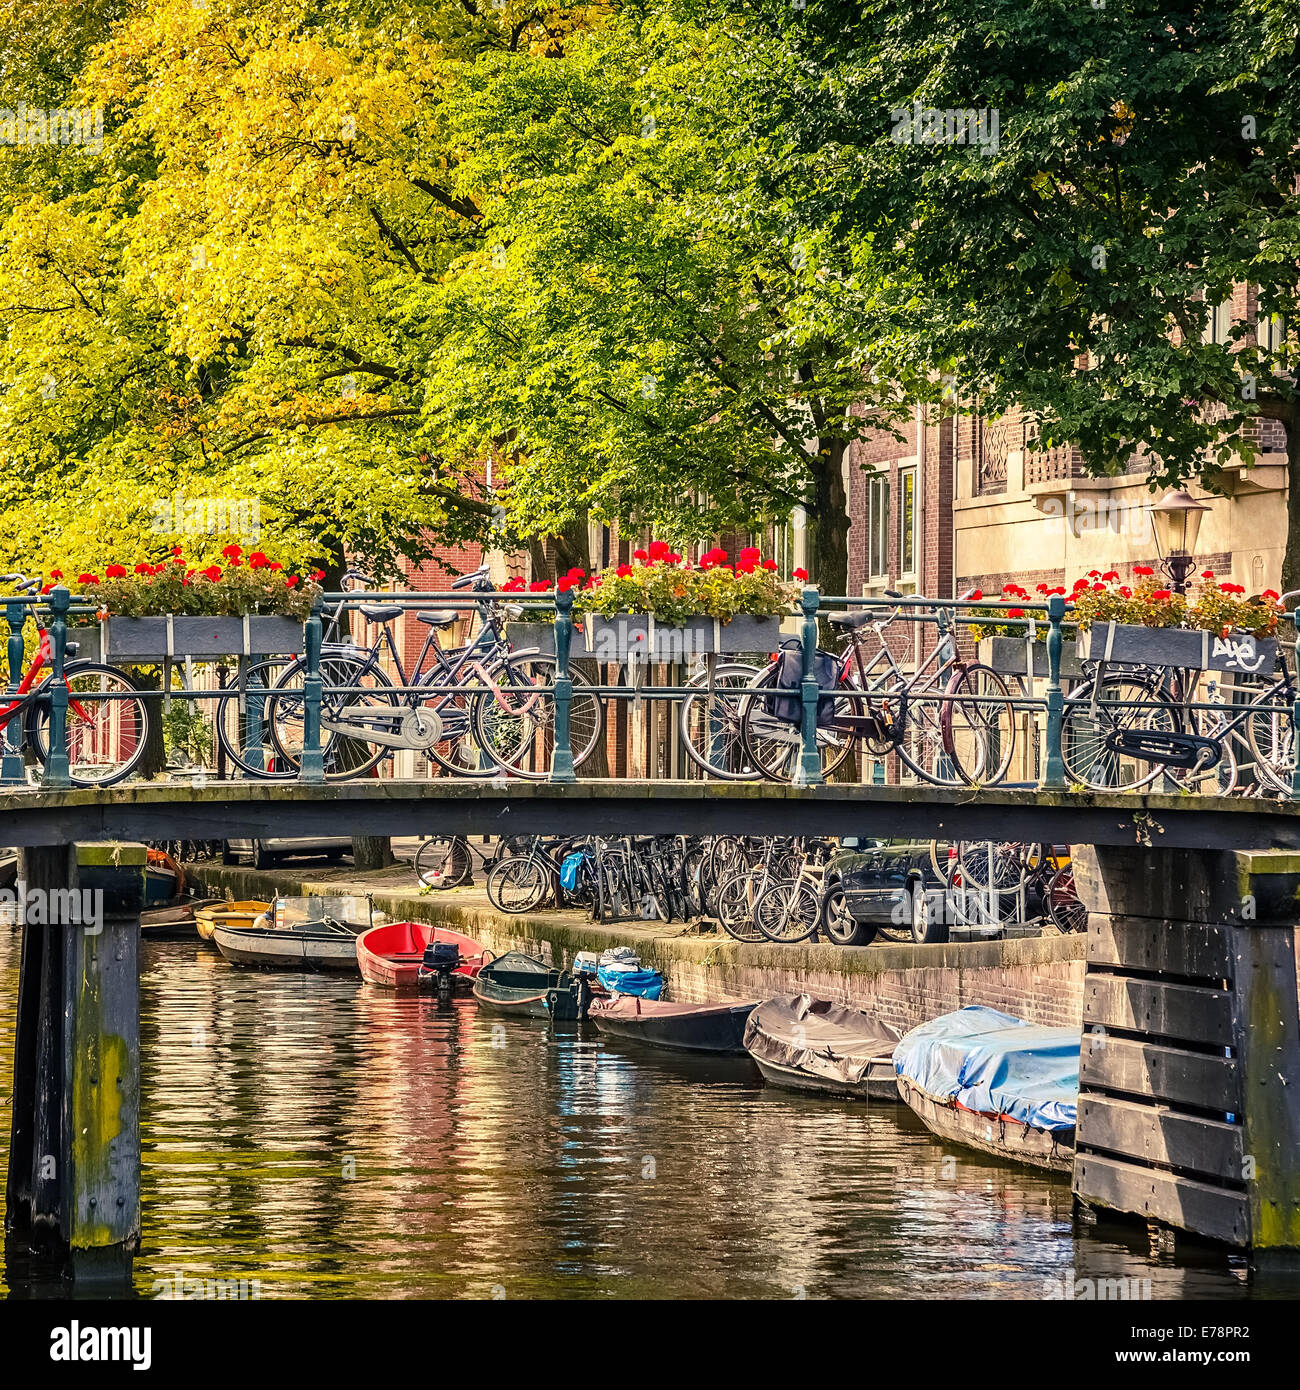 Canal in Amsterdam - Stock Image